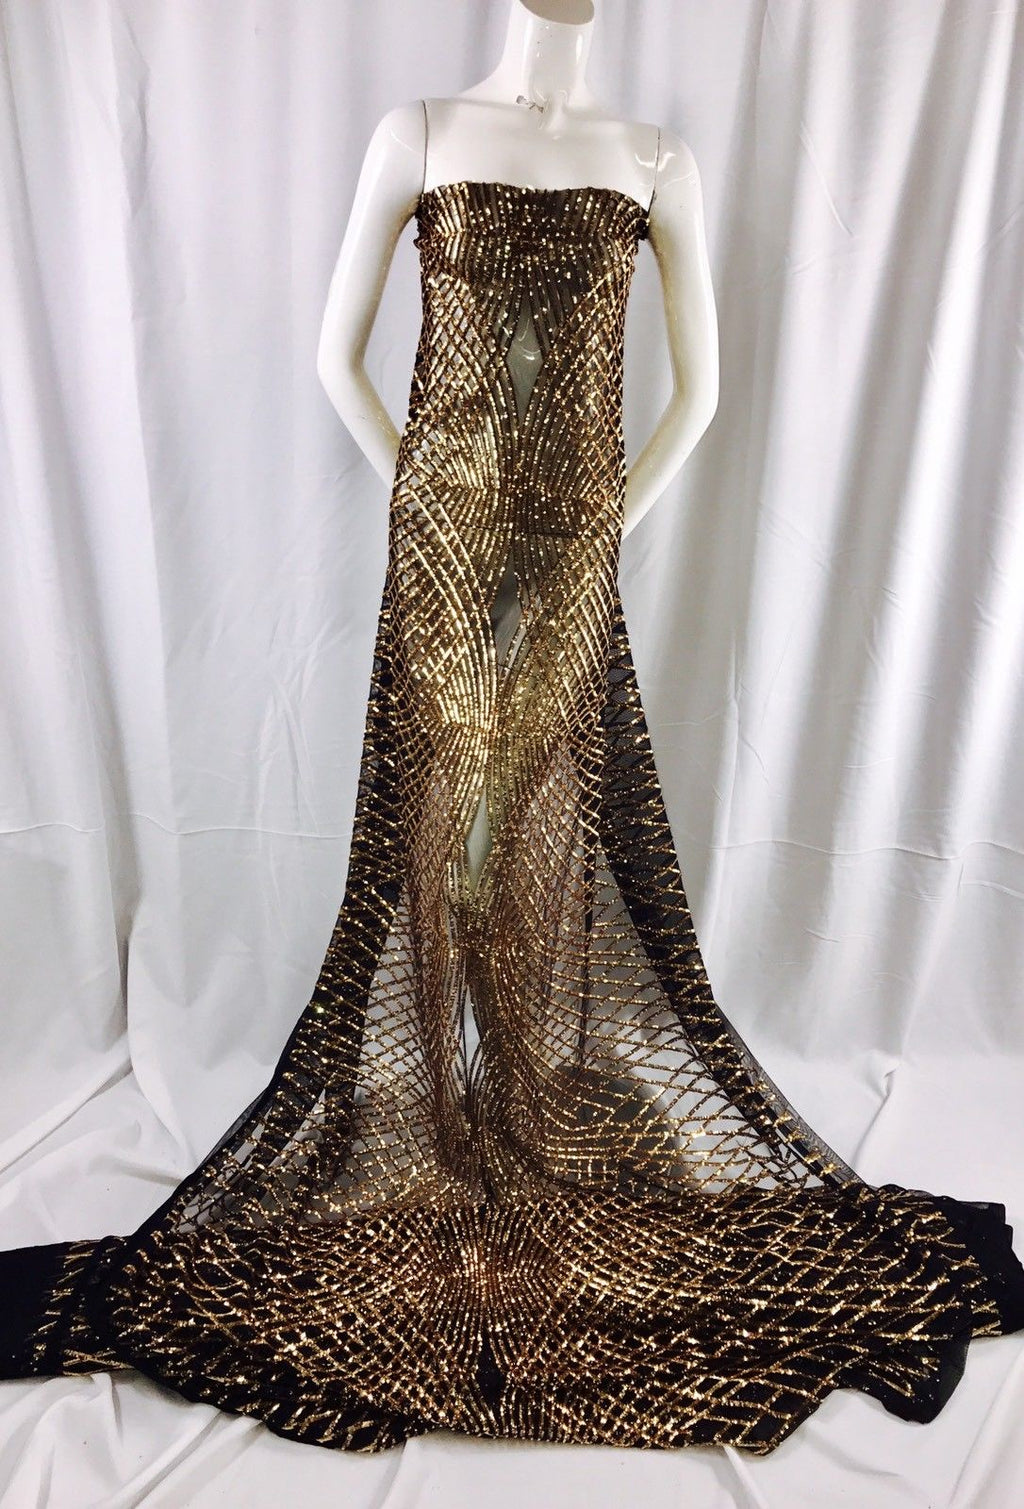 Dk.Gold Venom Diamond Web Embroider With Sequins On A Black Mesh-Sold By Yard. - KINGDOM OF FABRICS